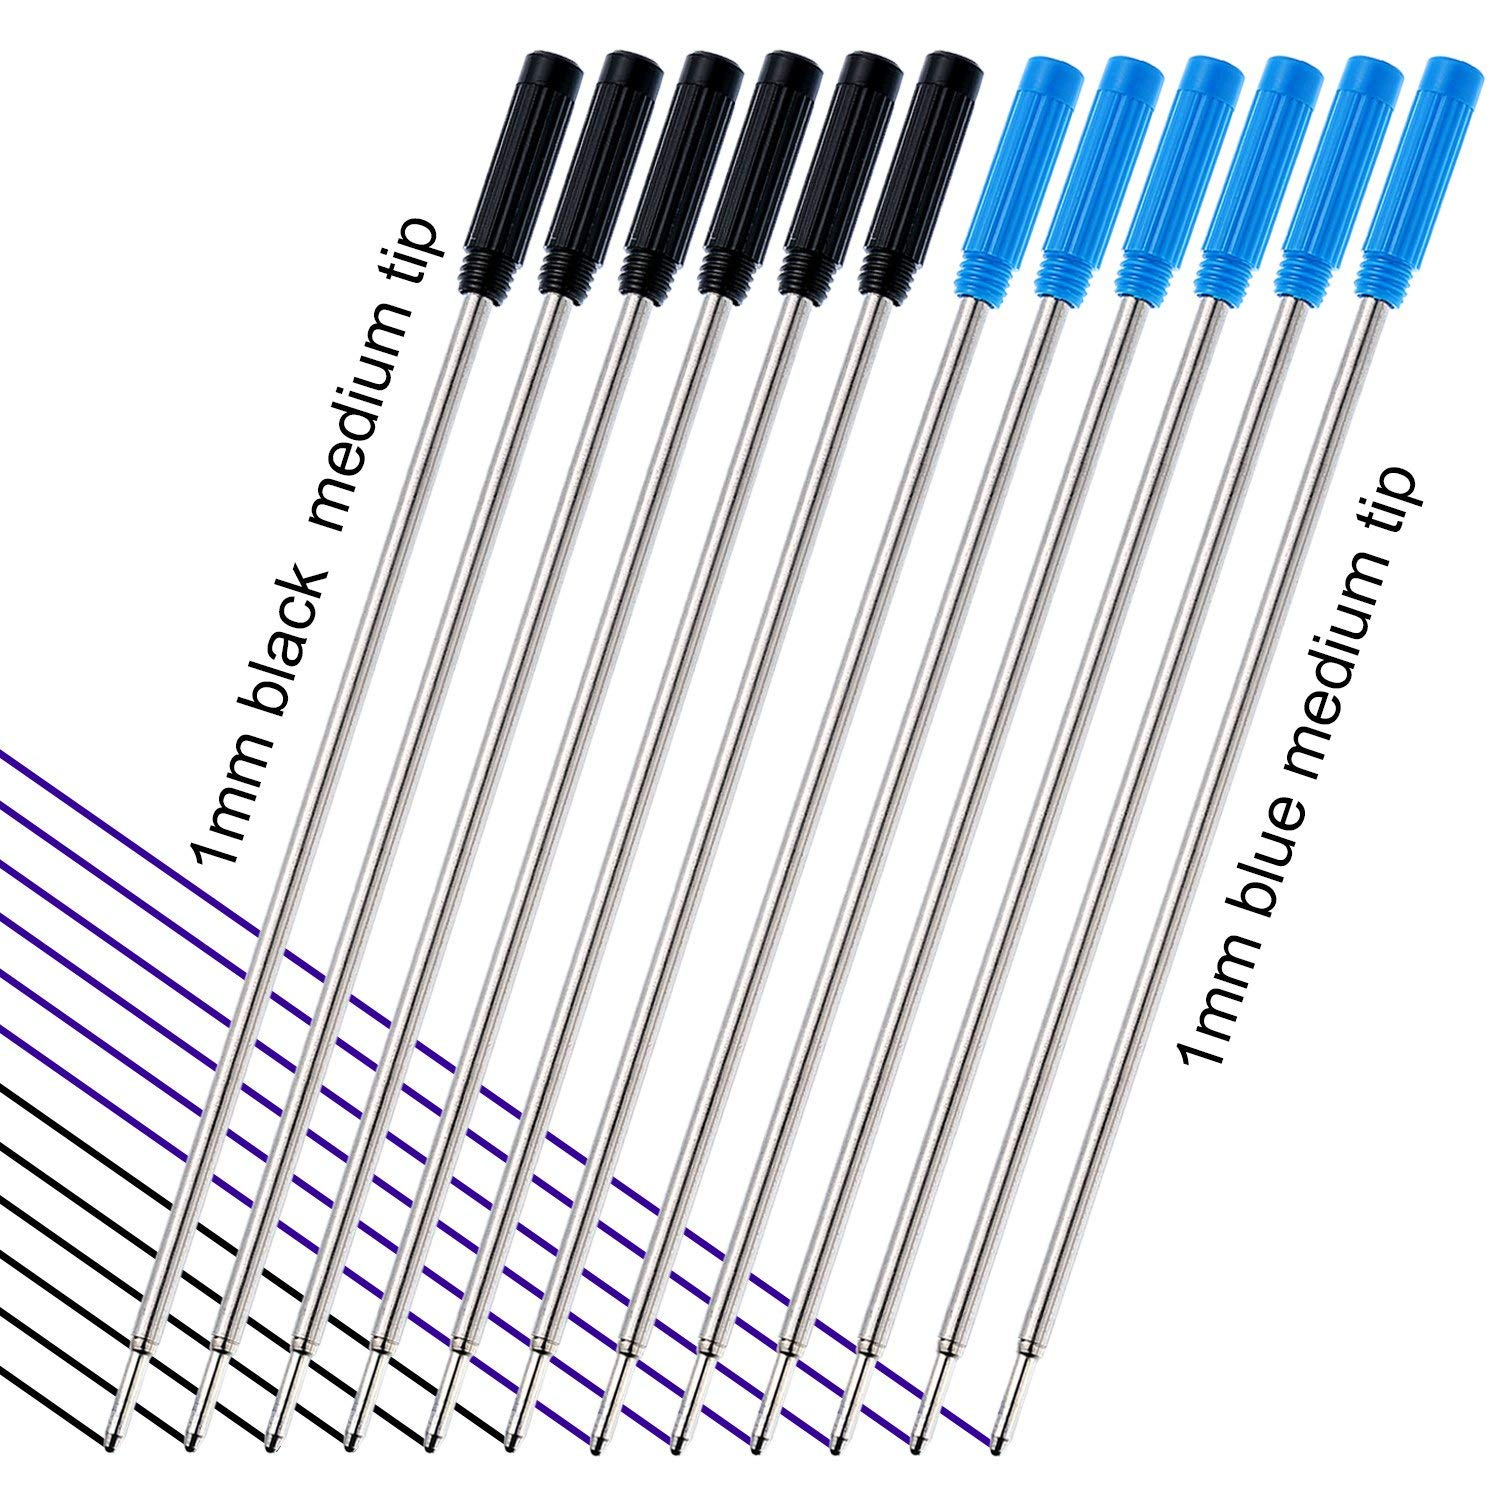 TecUnite 4.5 Inch 12 Pieces Ballpoint Pen Refills Replaceable Smooth Writing Ballpoint Refill with Black Velvet Bag, Black and Blue